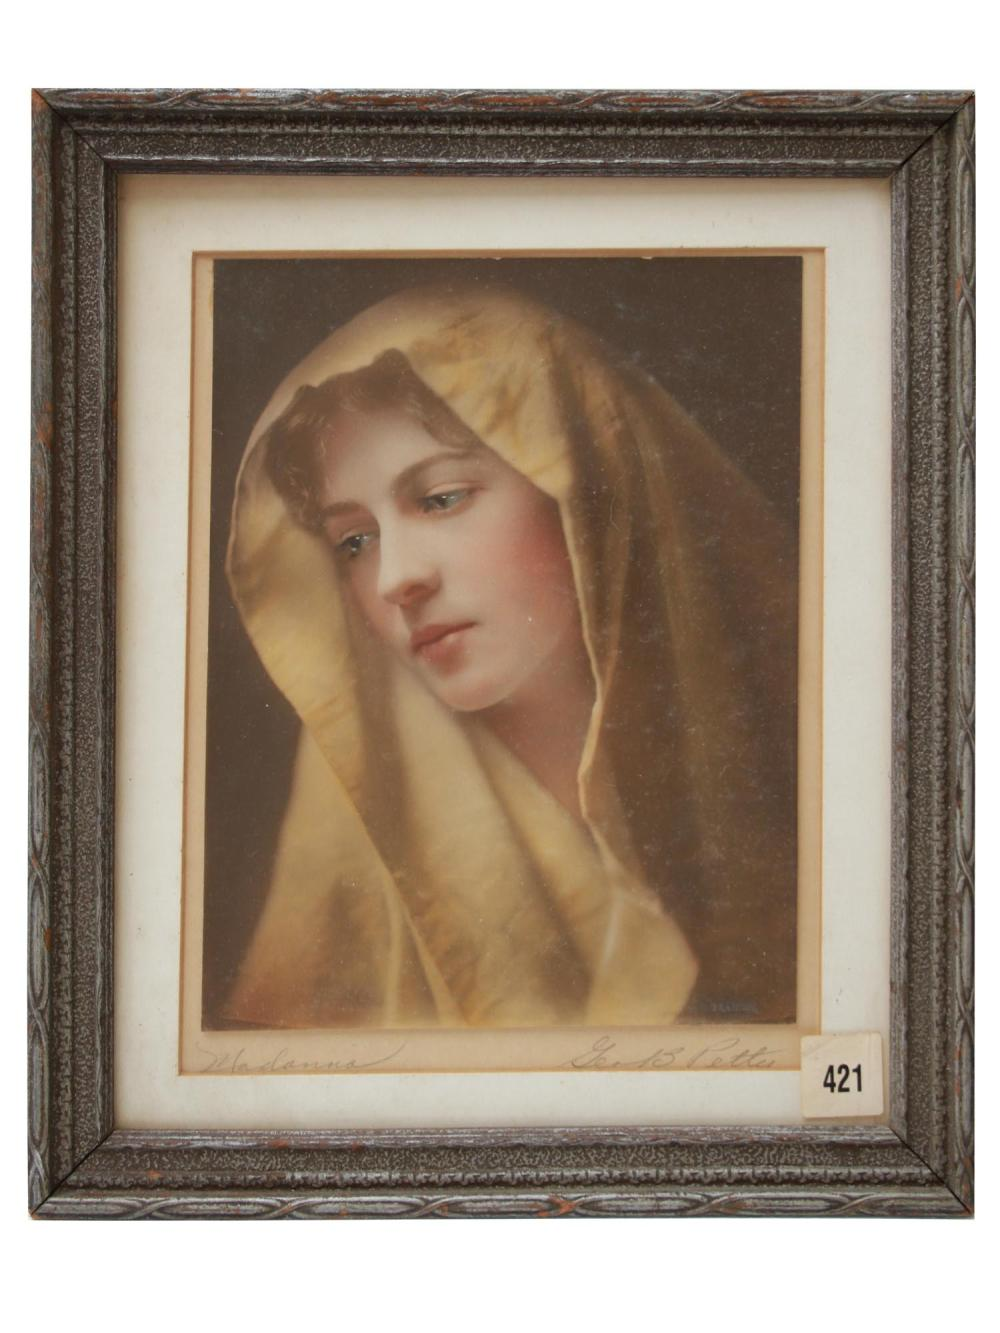 HAND COLORED PHOTO MODERN MADONNA BY GEORGE PETTY